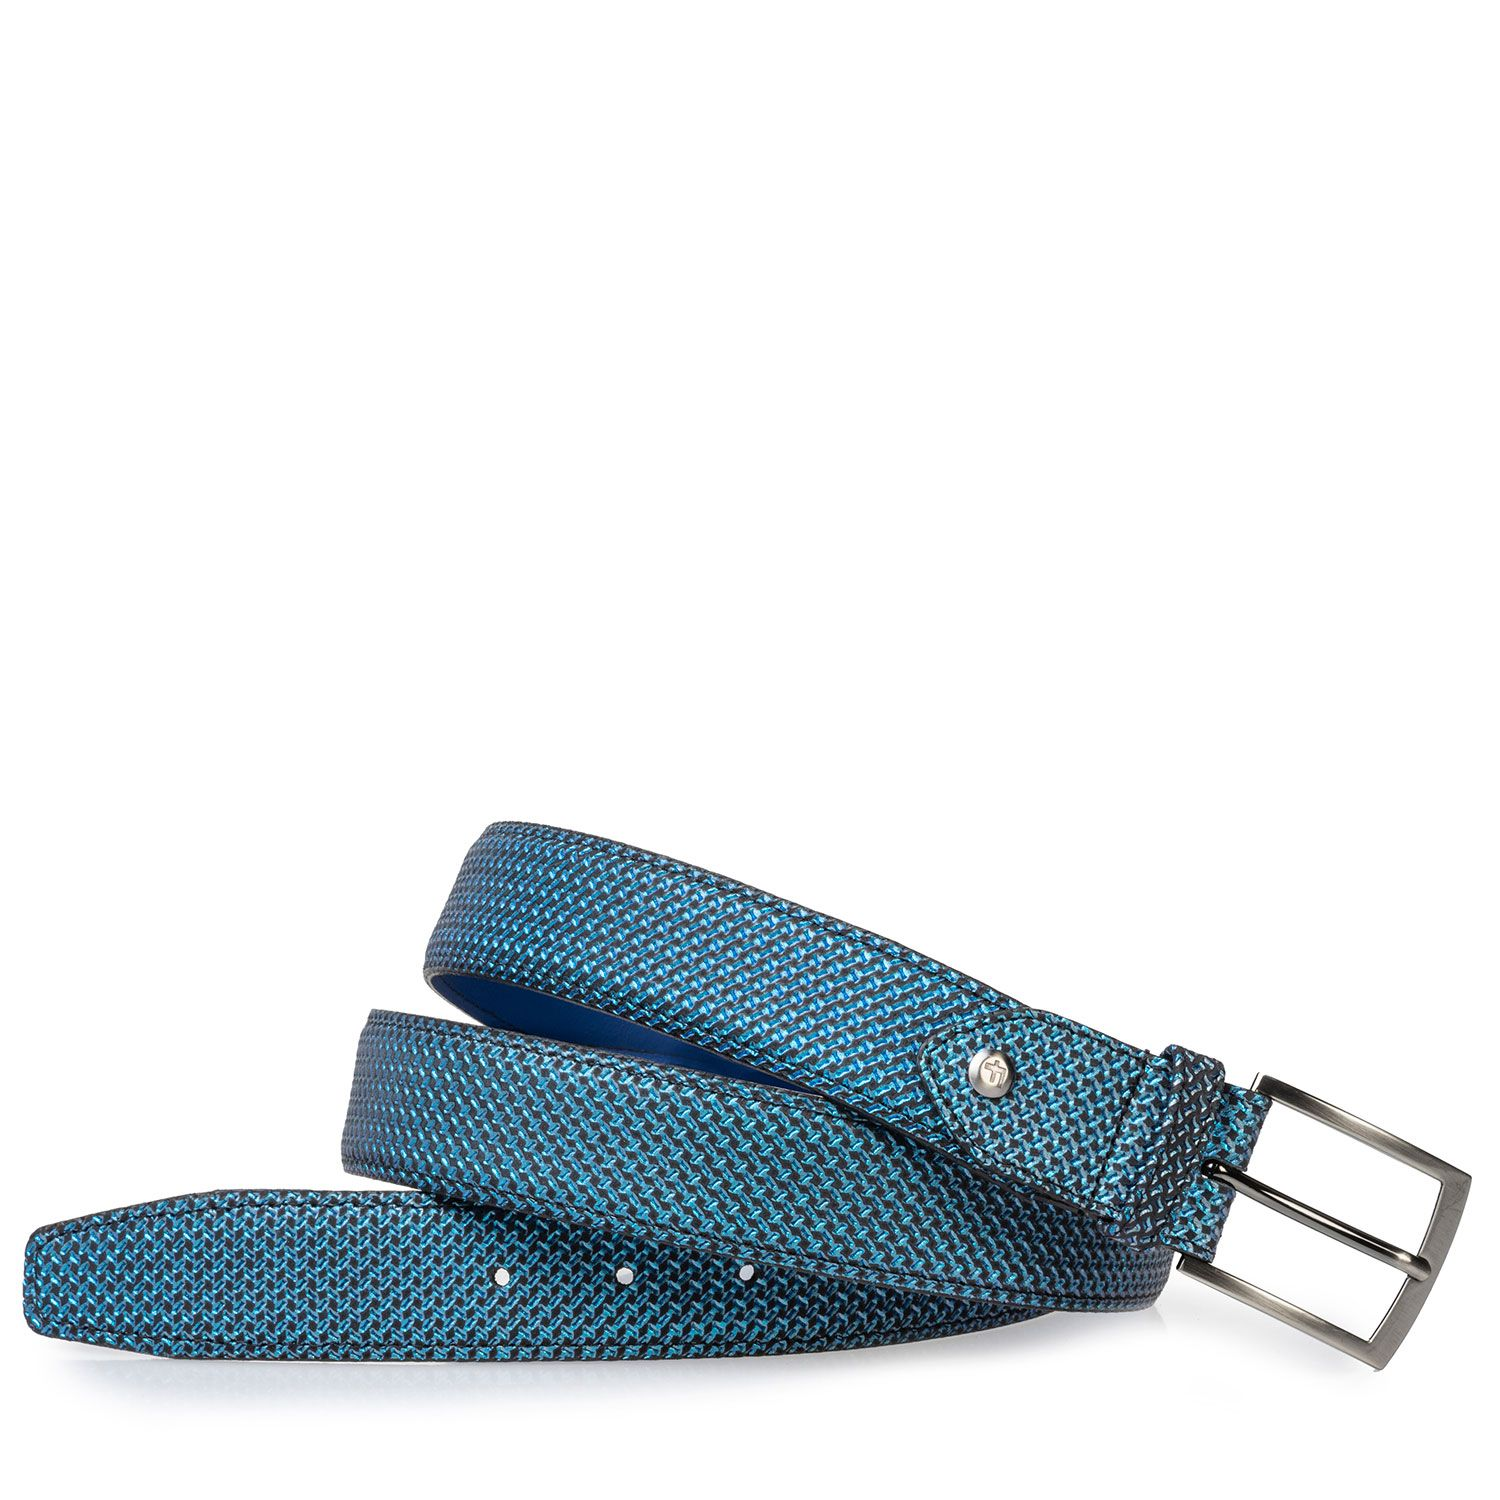 75203/40 - Belt blue metallic